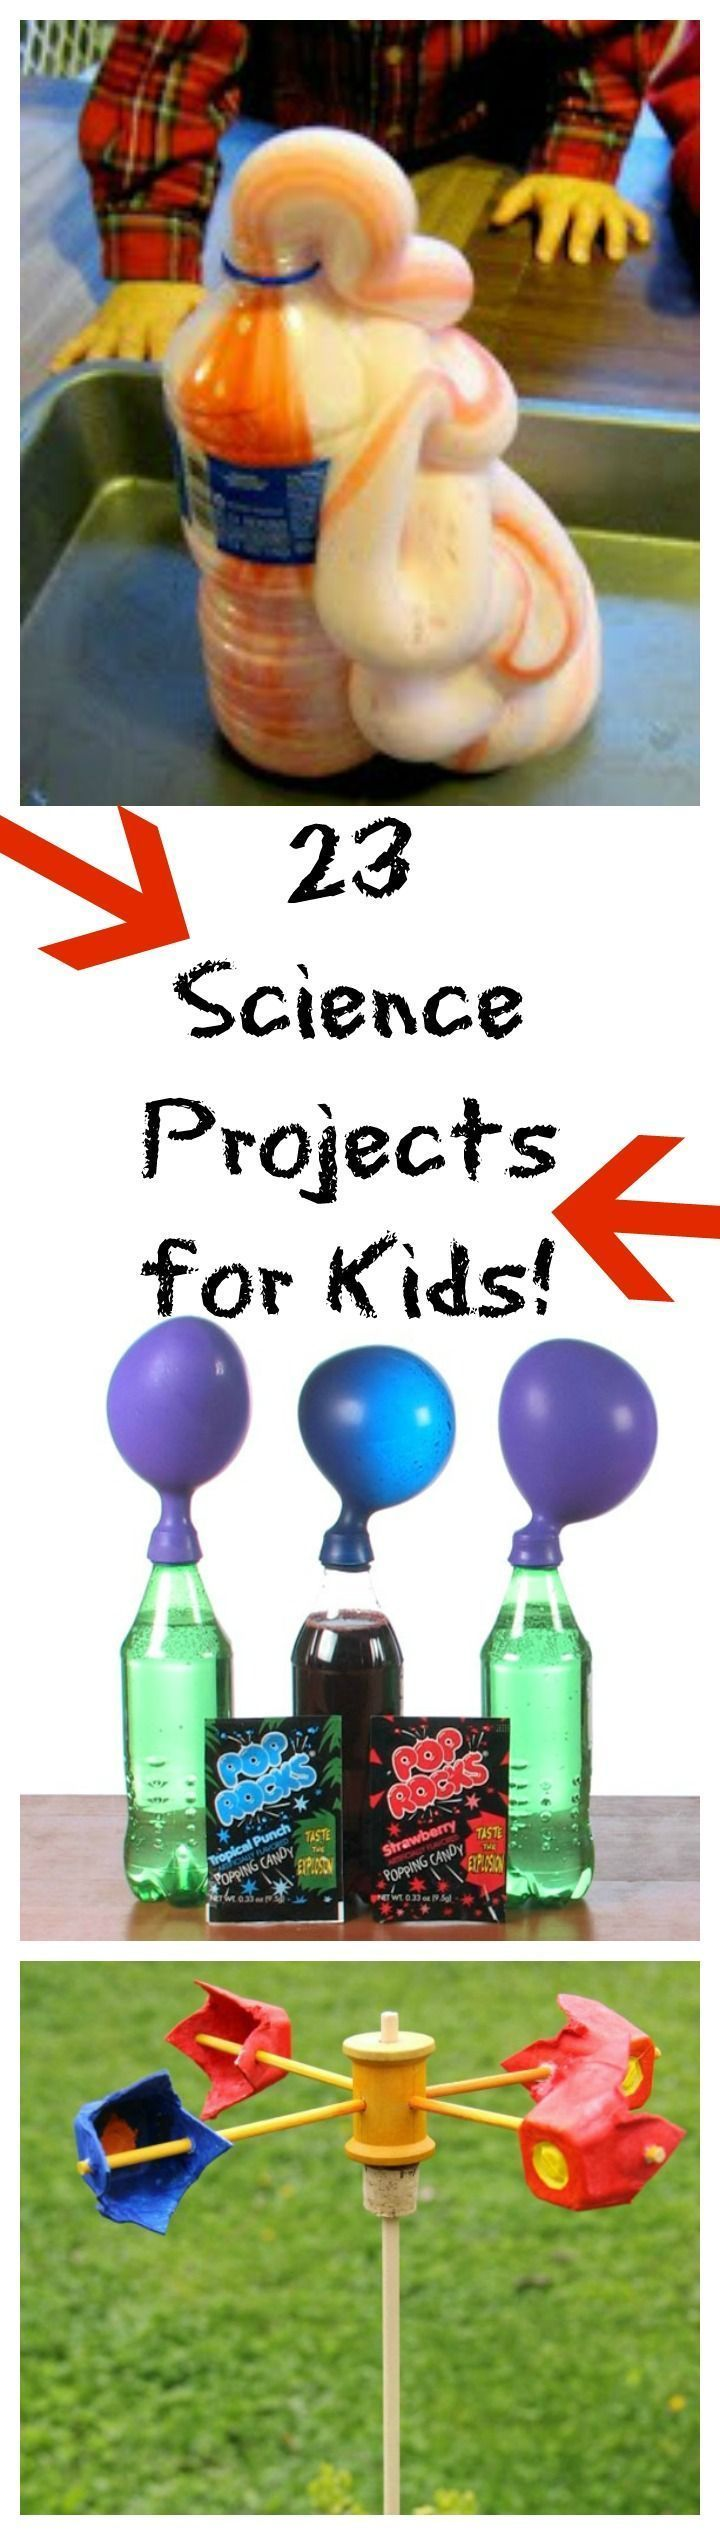 23 Science Projects for Kids!